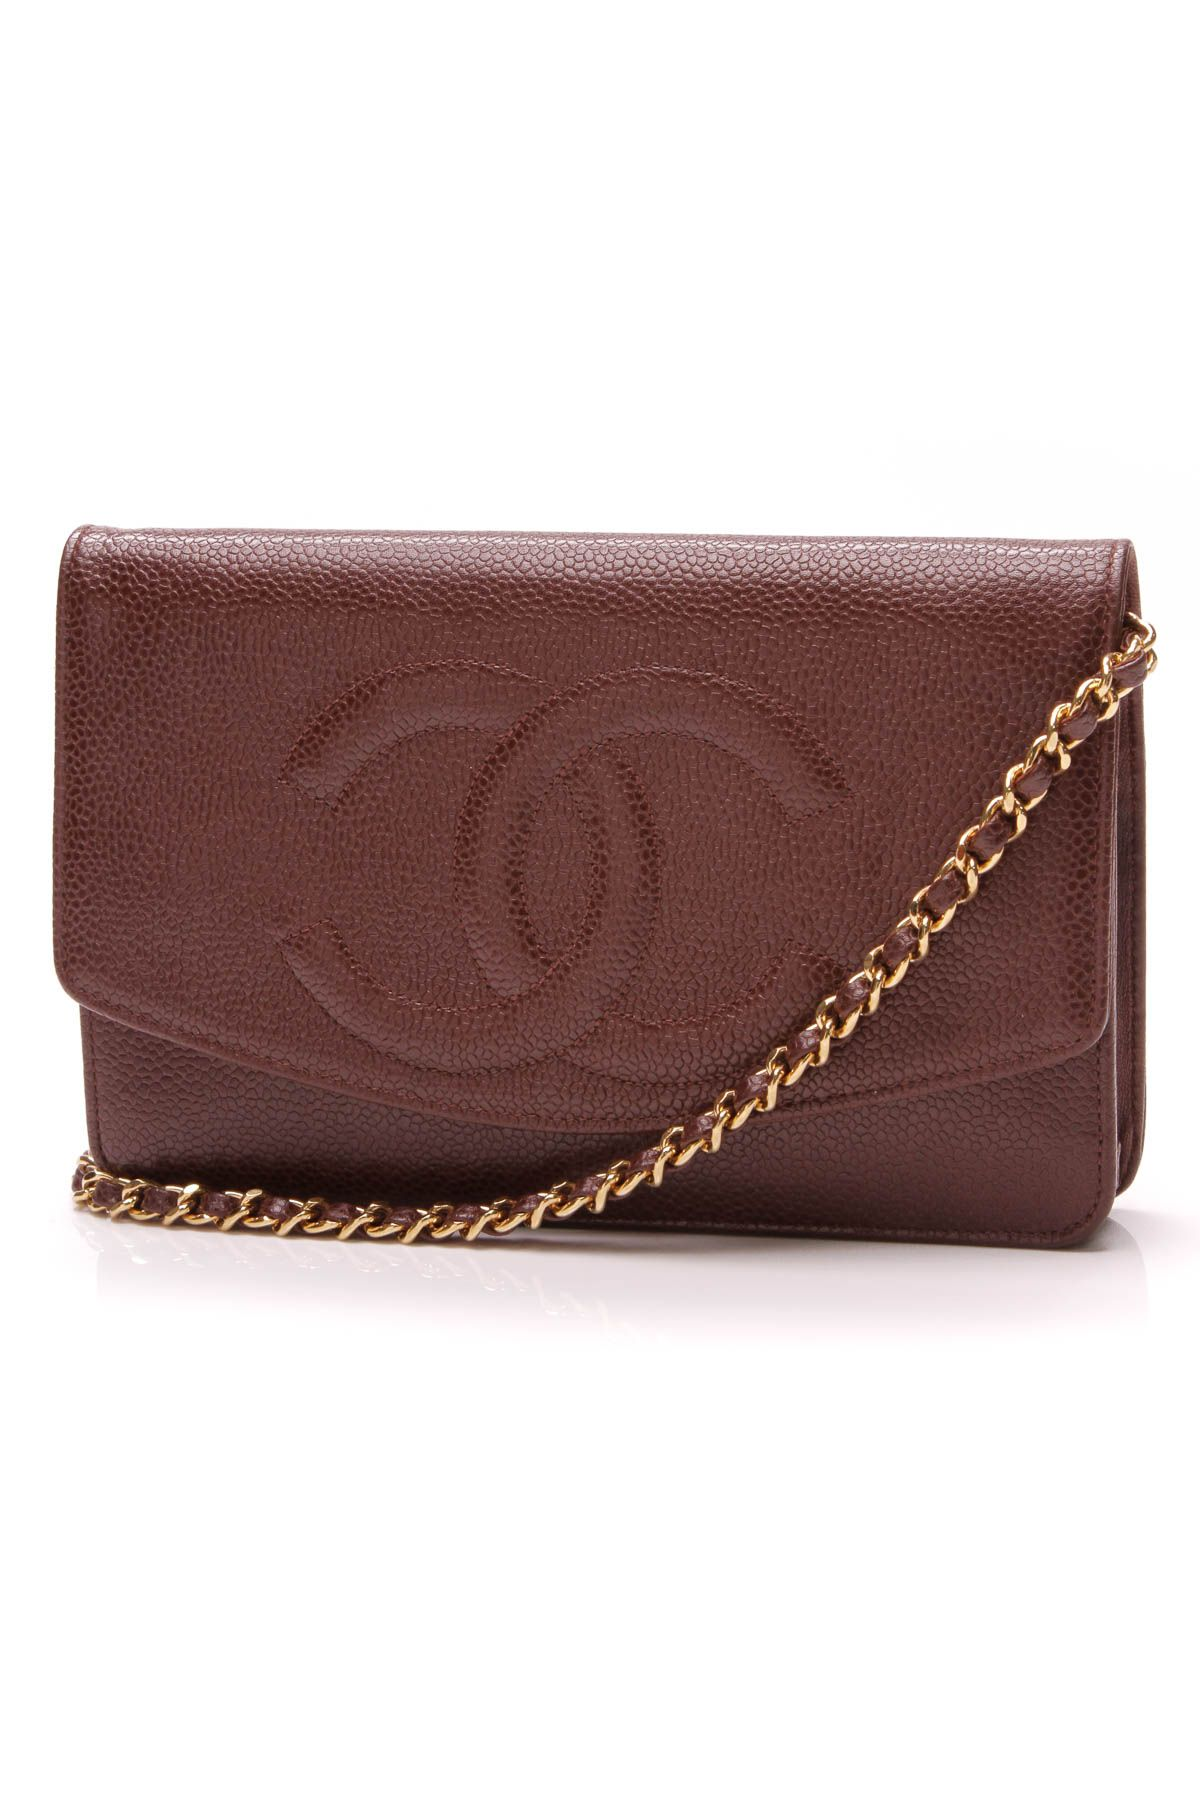 a2c30b2cb Vintage Timeless CC WOC Crossbody Bag - Brown Caviar in 2019 | Crazy ...